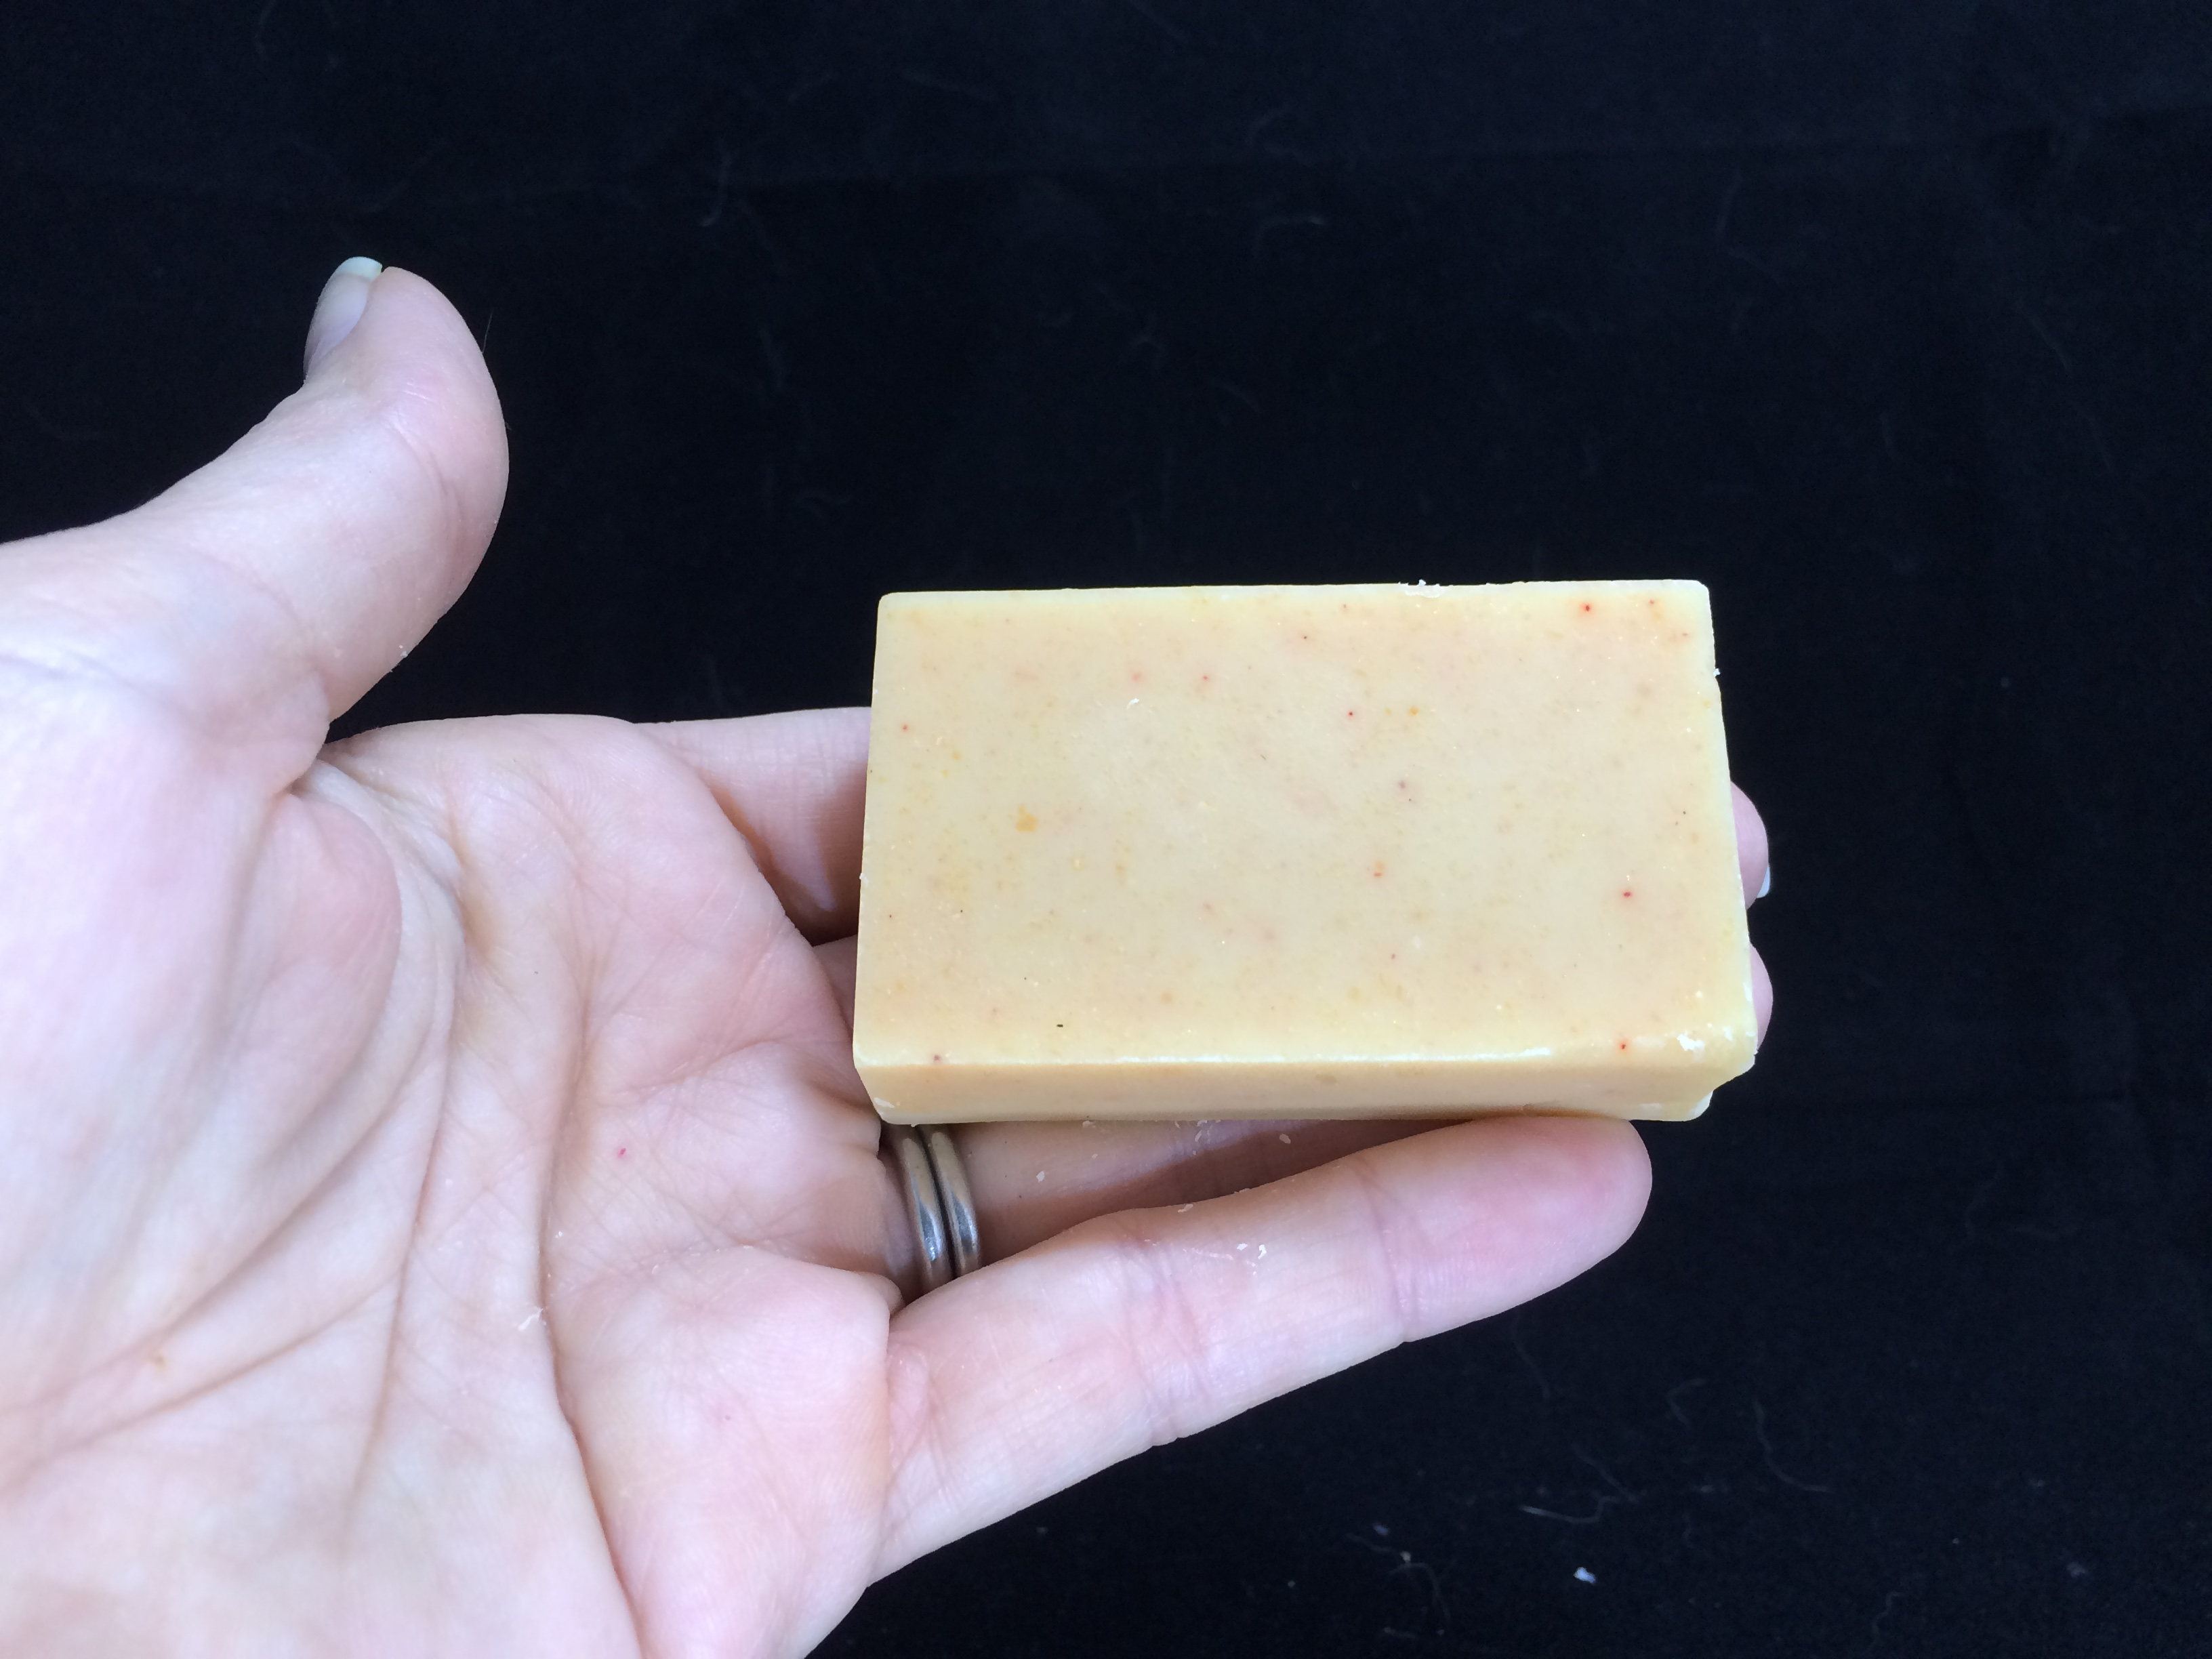 Uplifting trial size soap bar